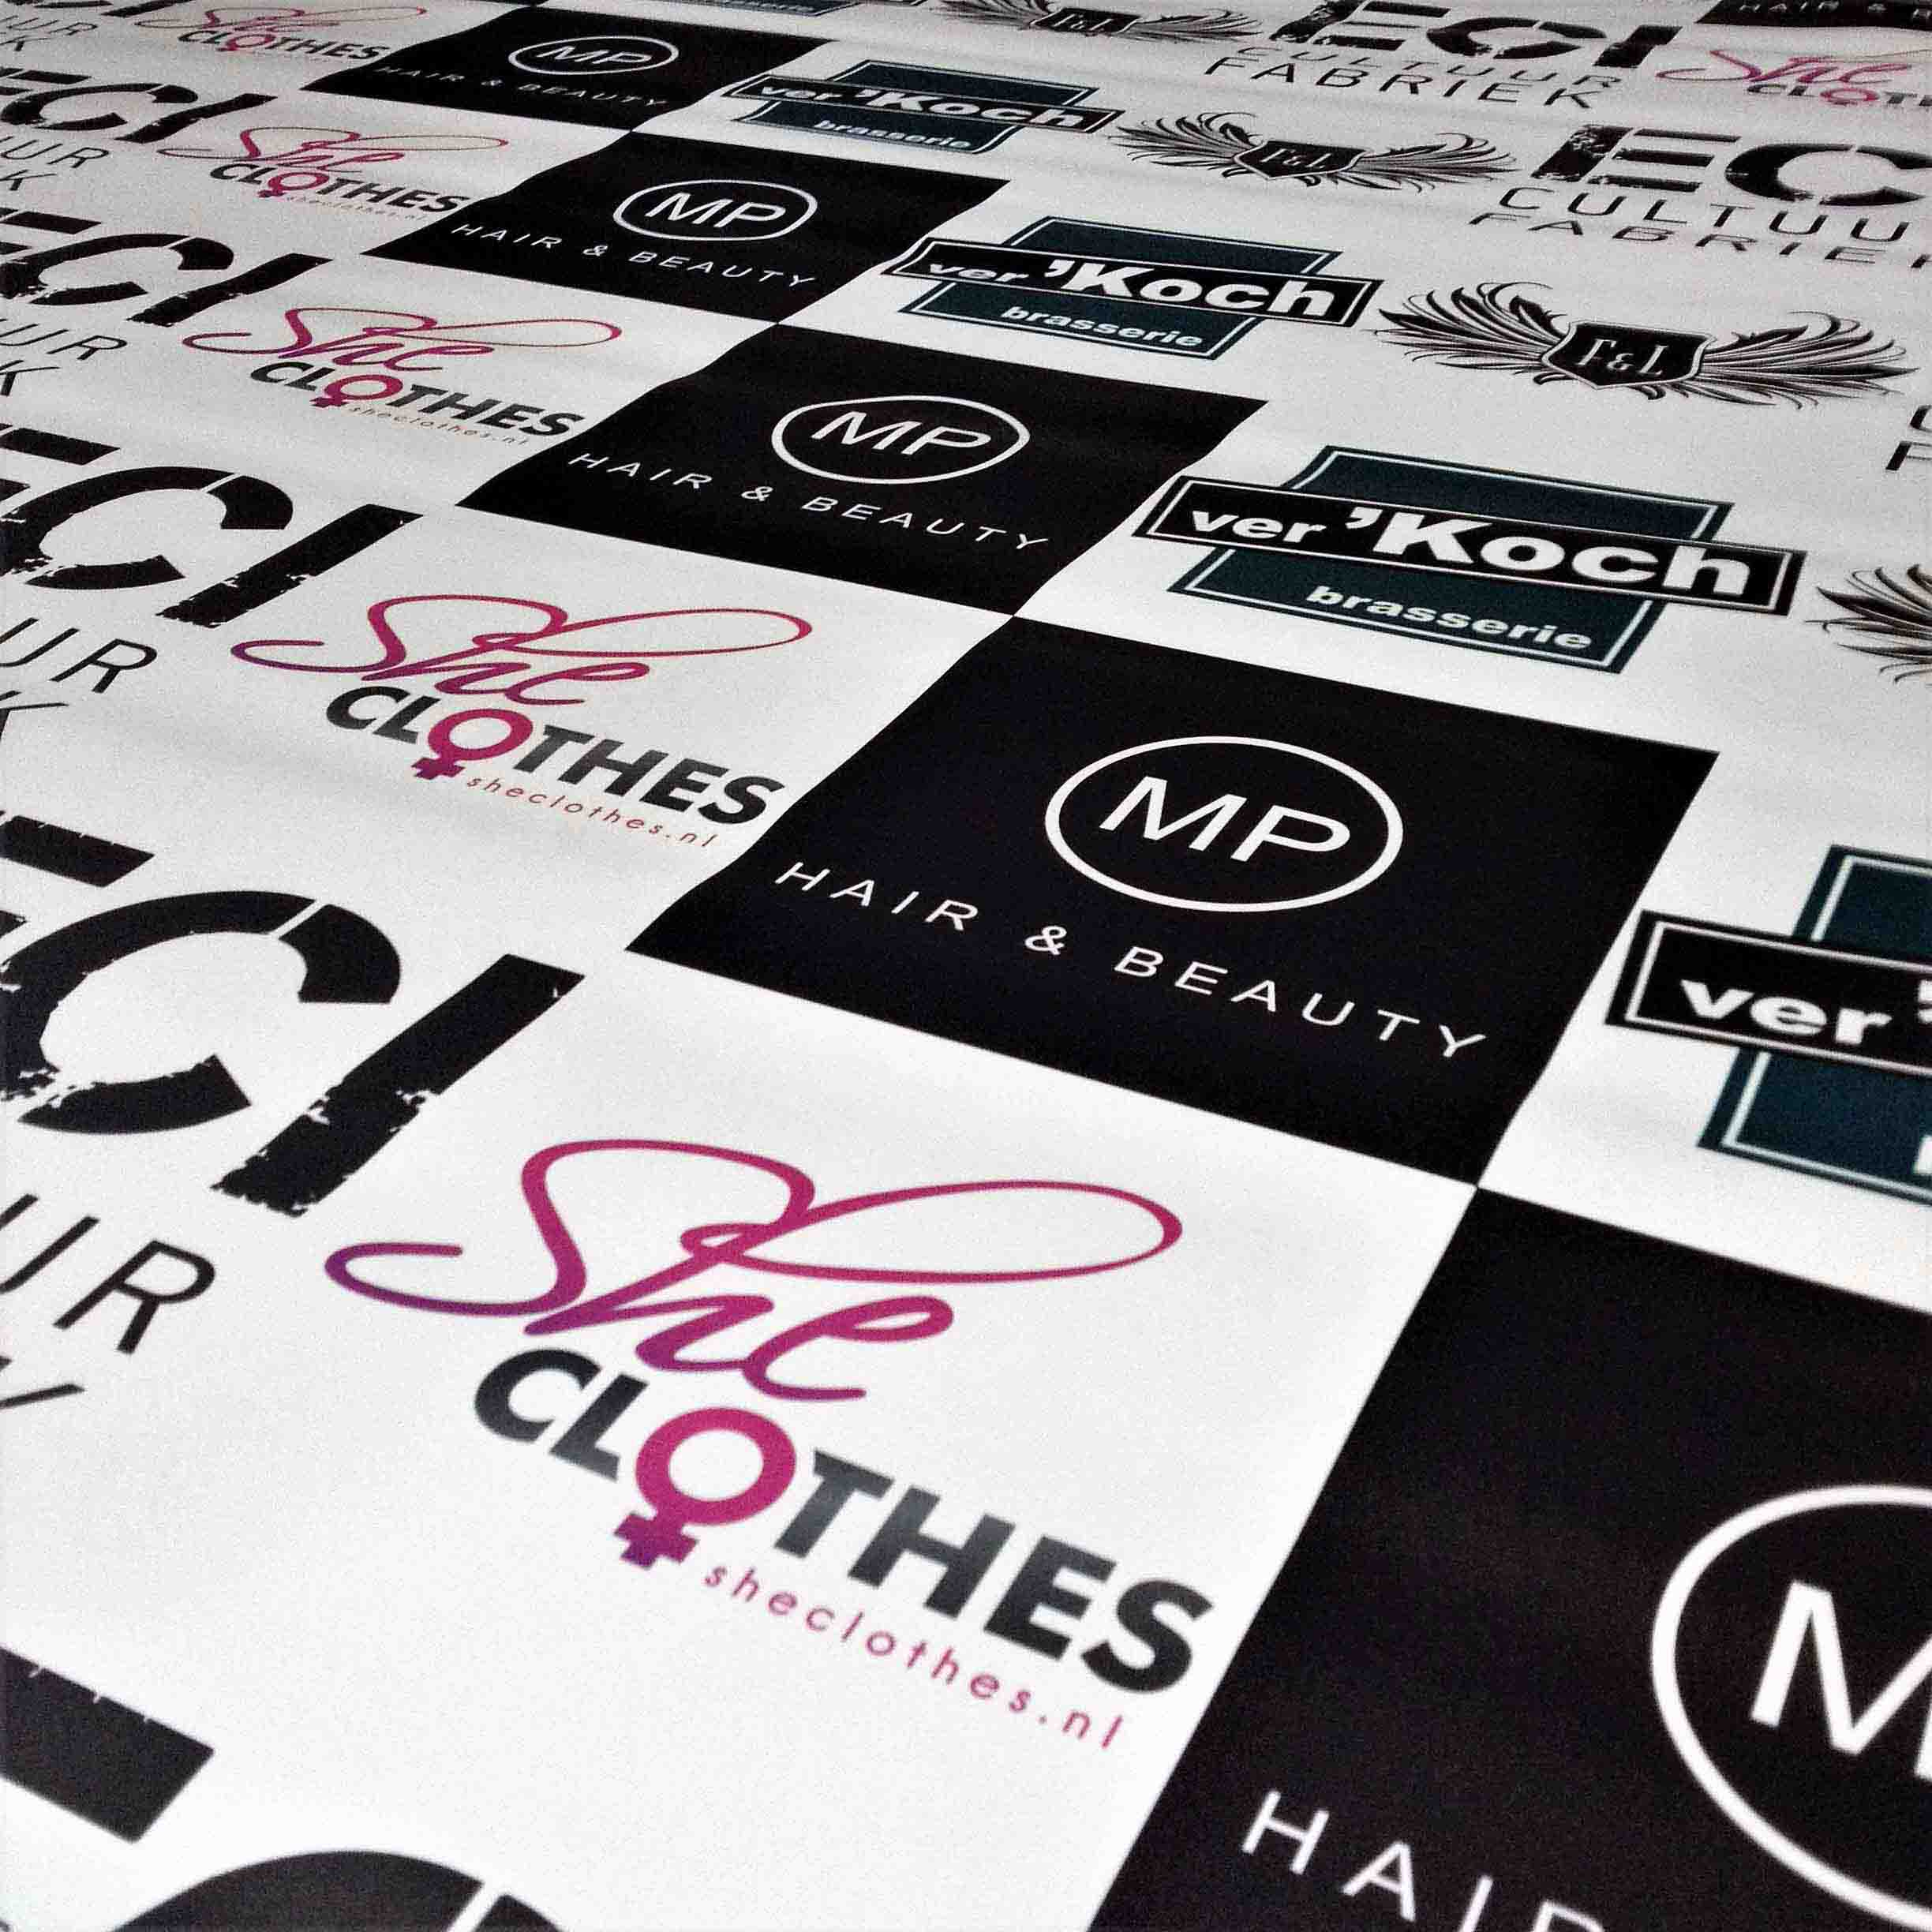 She Clothes fotobooth banner